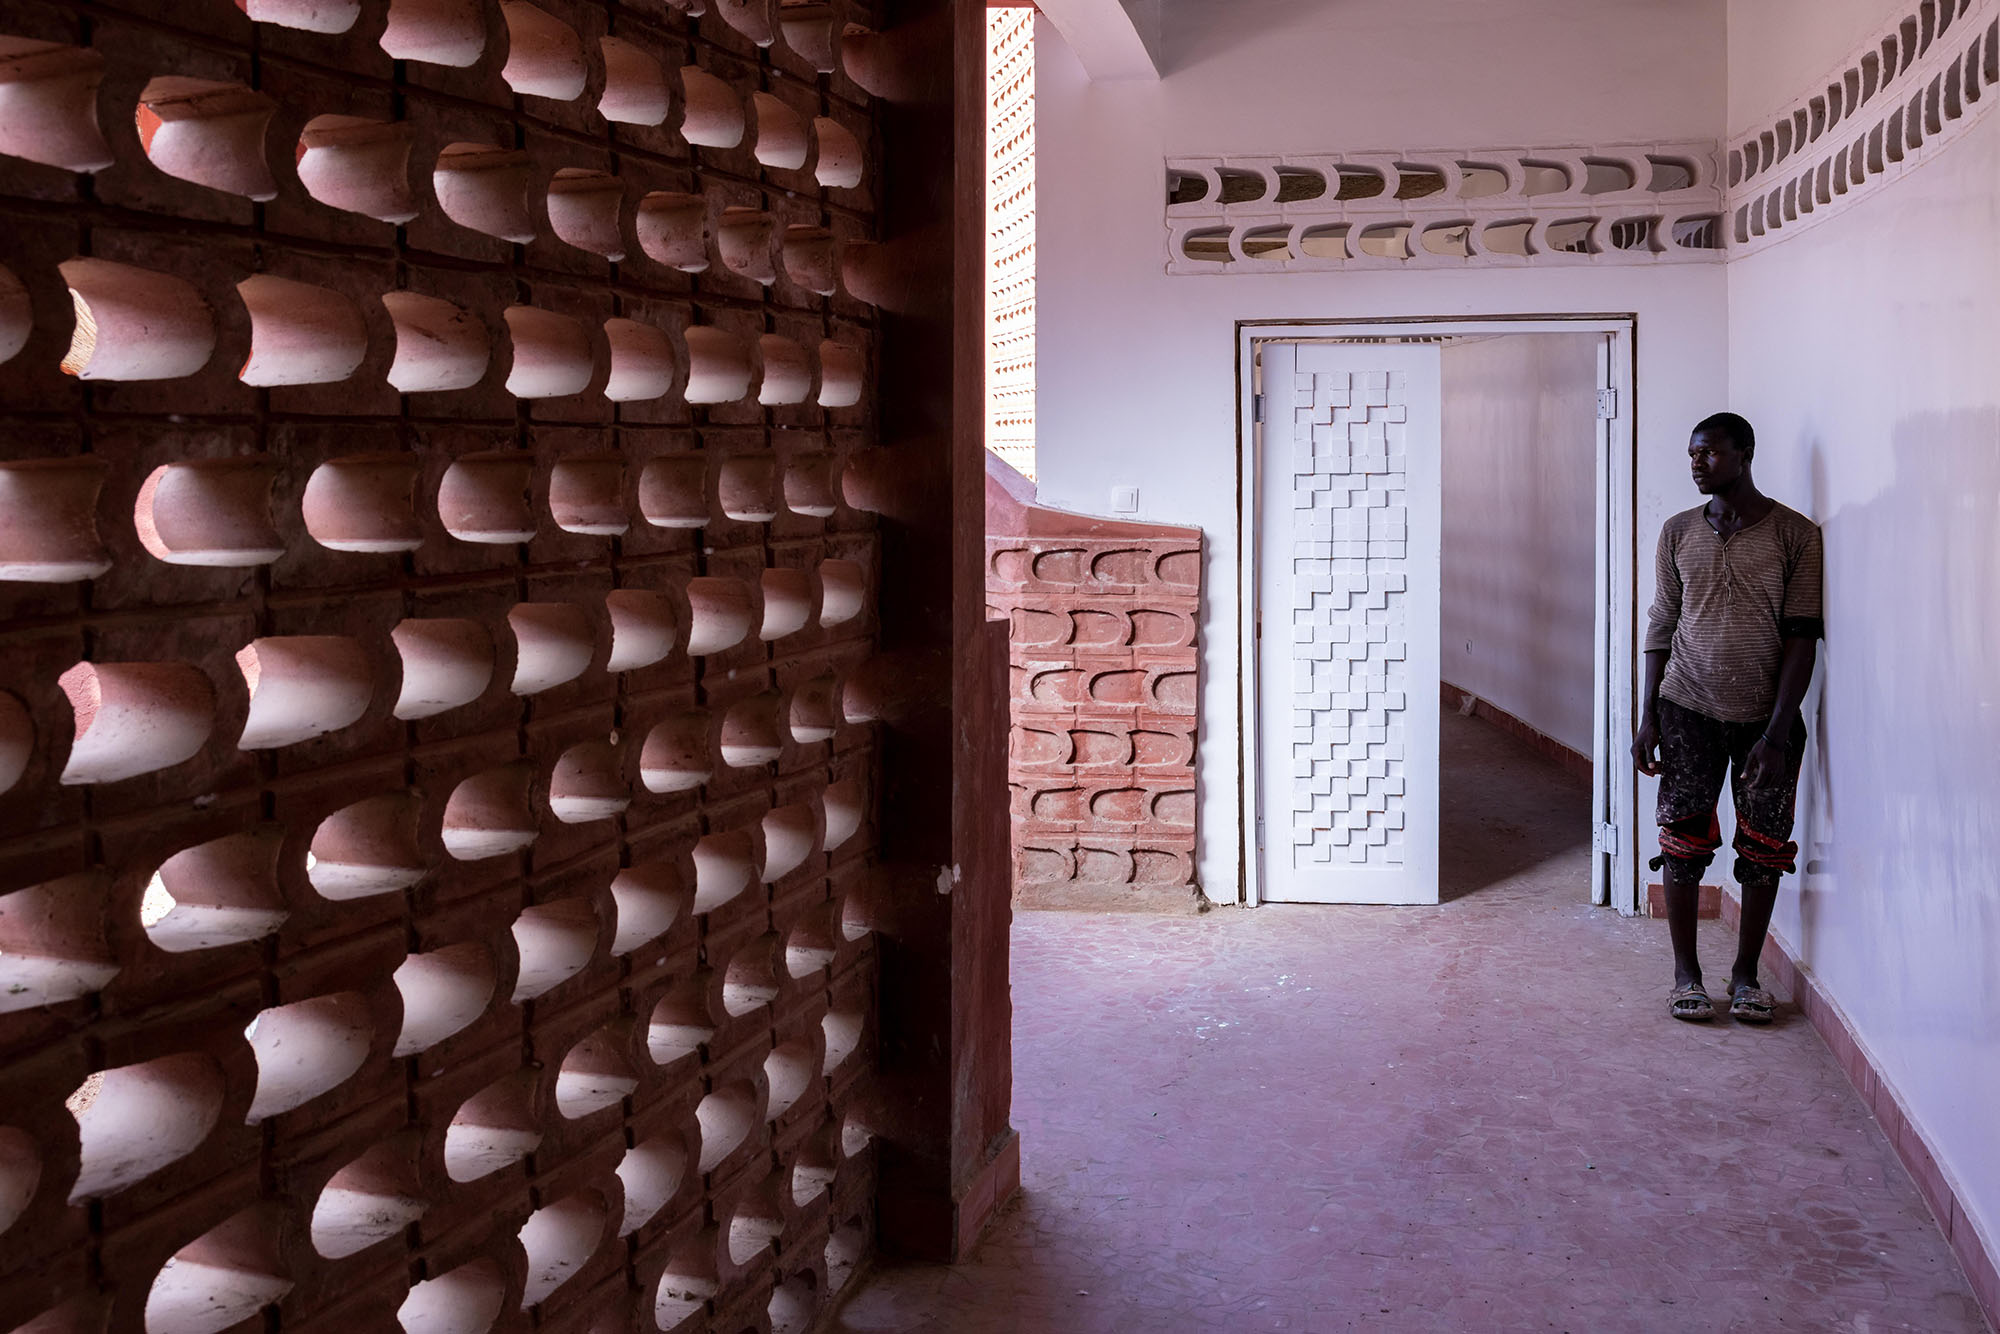 Maternity and Paediatric Hospital in Tambacounda, Senegal, by Manuel Herz Photo: Iwan Baan Courtesy of the Josef and Anni Albers Foundation and Le Korsa